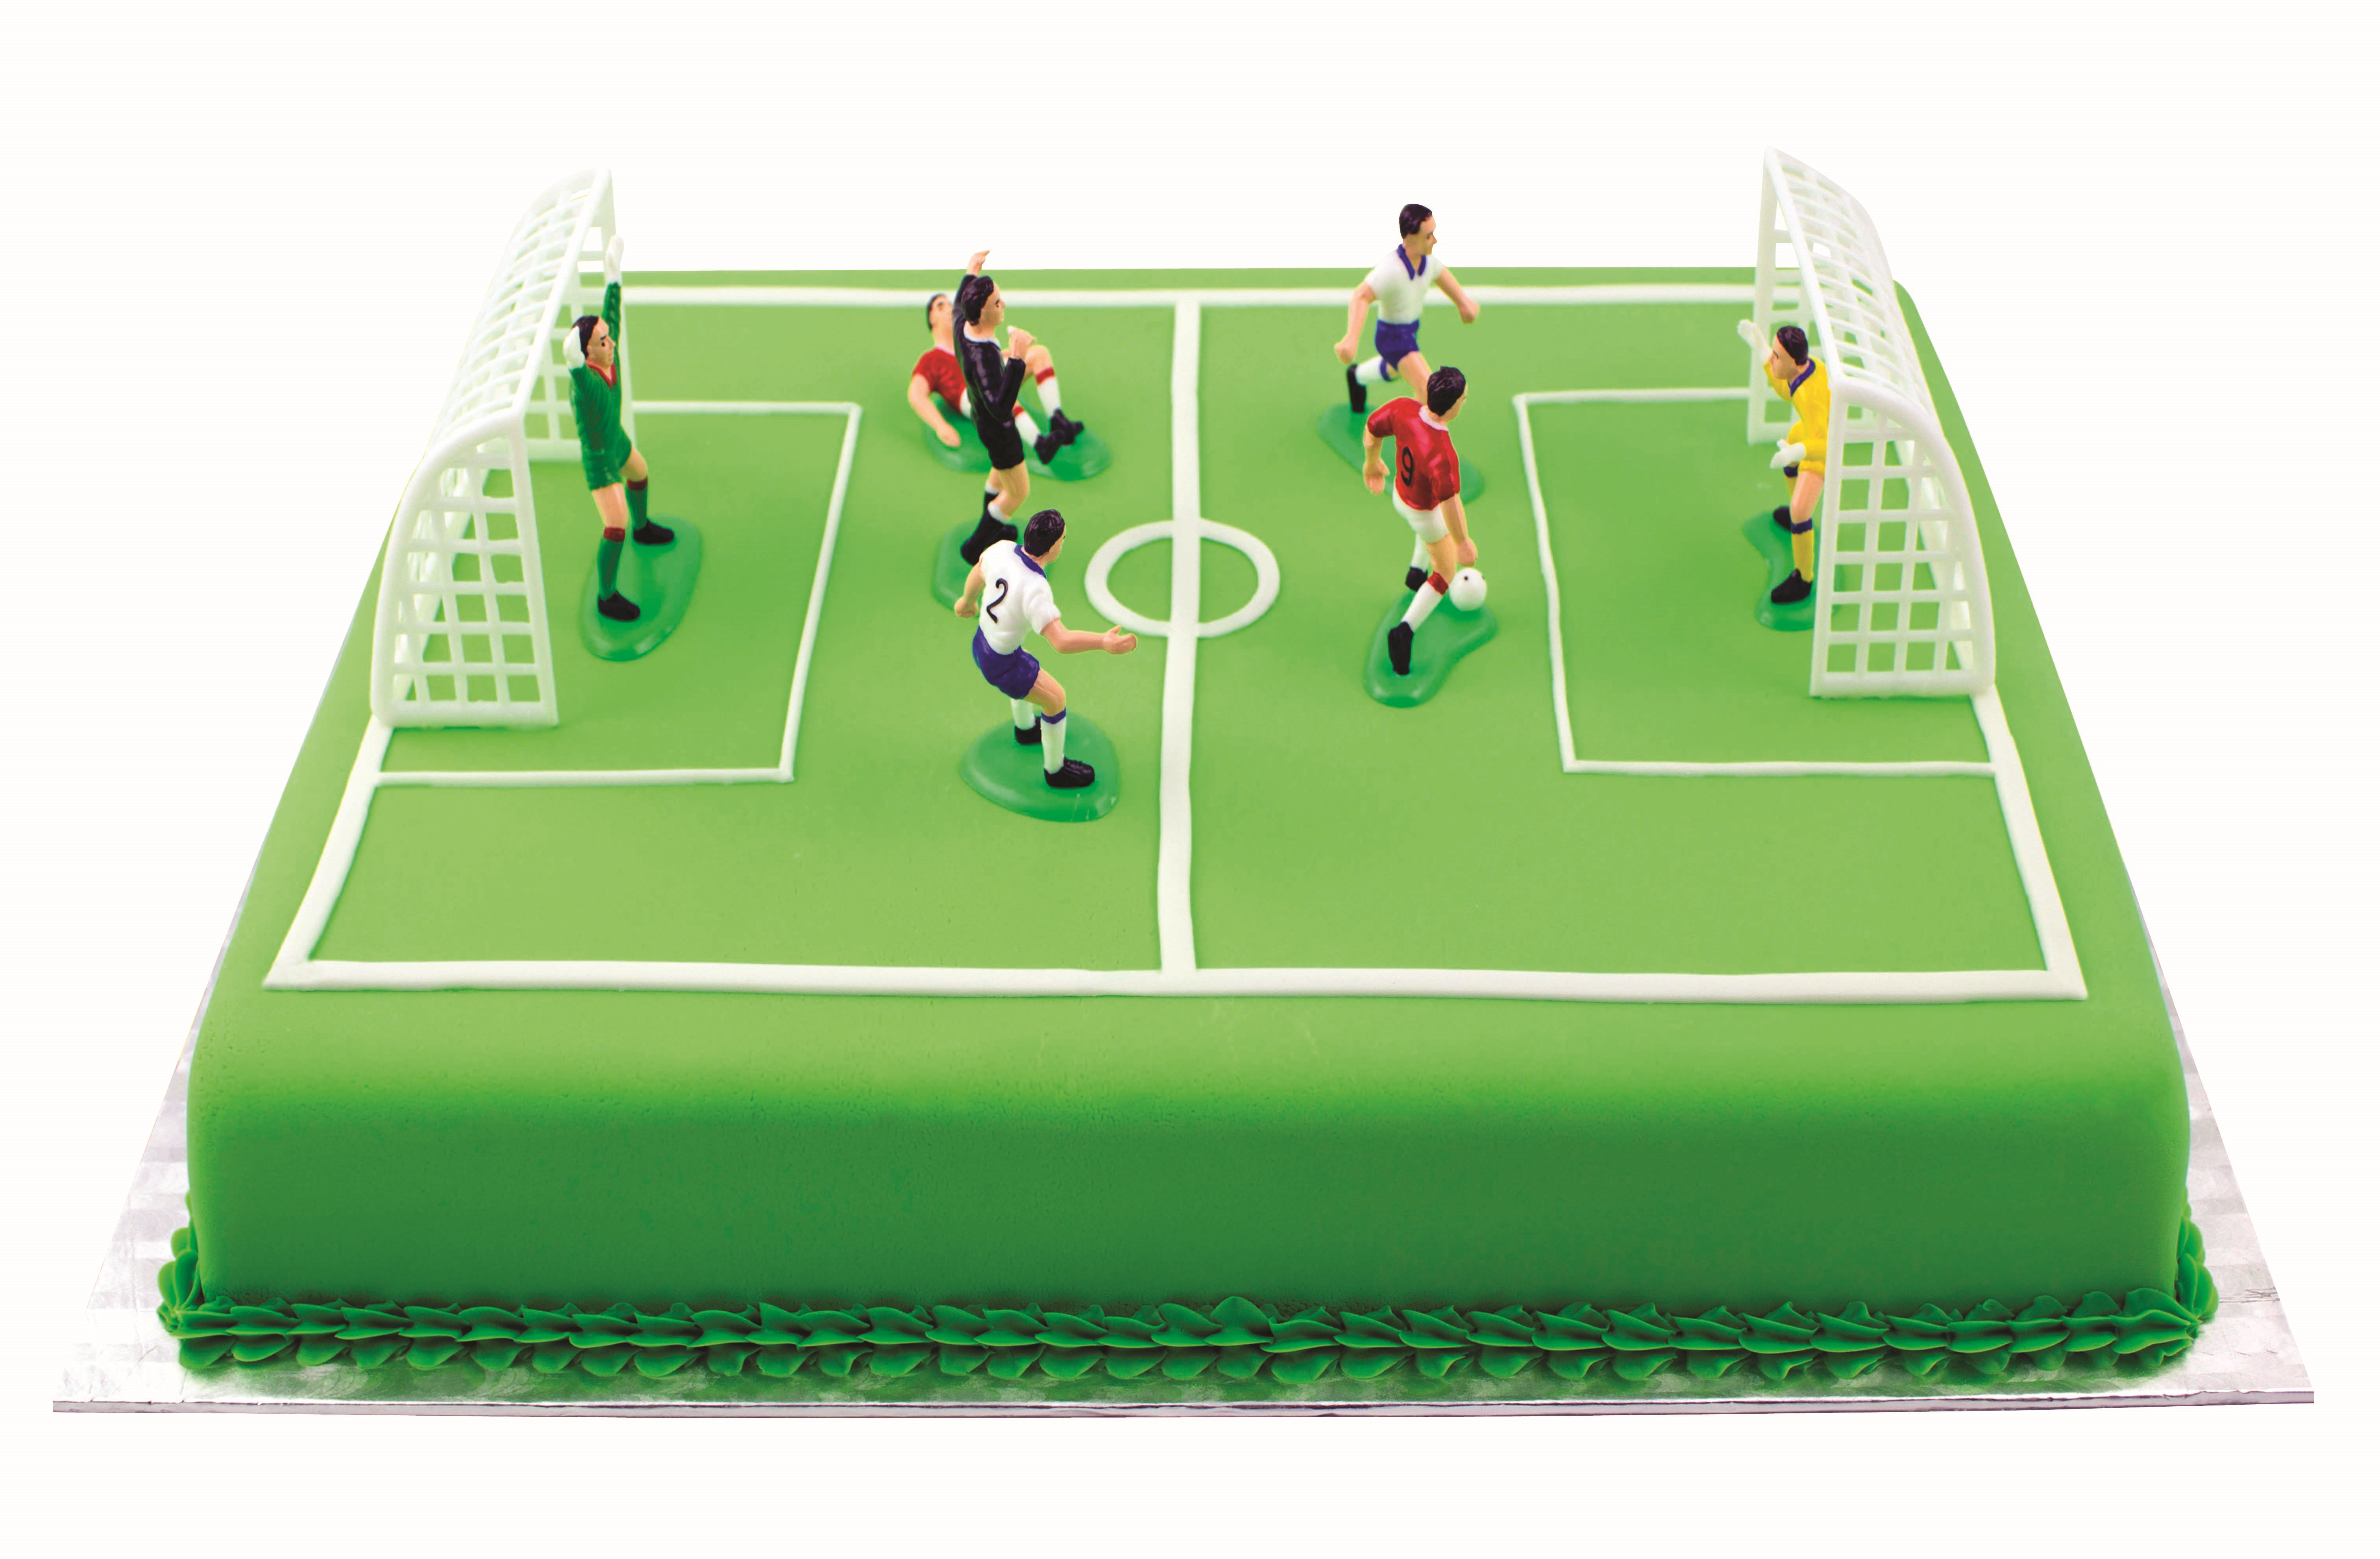 Cake Decorating Football Field : PME Soccer Football Cake Topper Decorations Birthday Cake ...